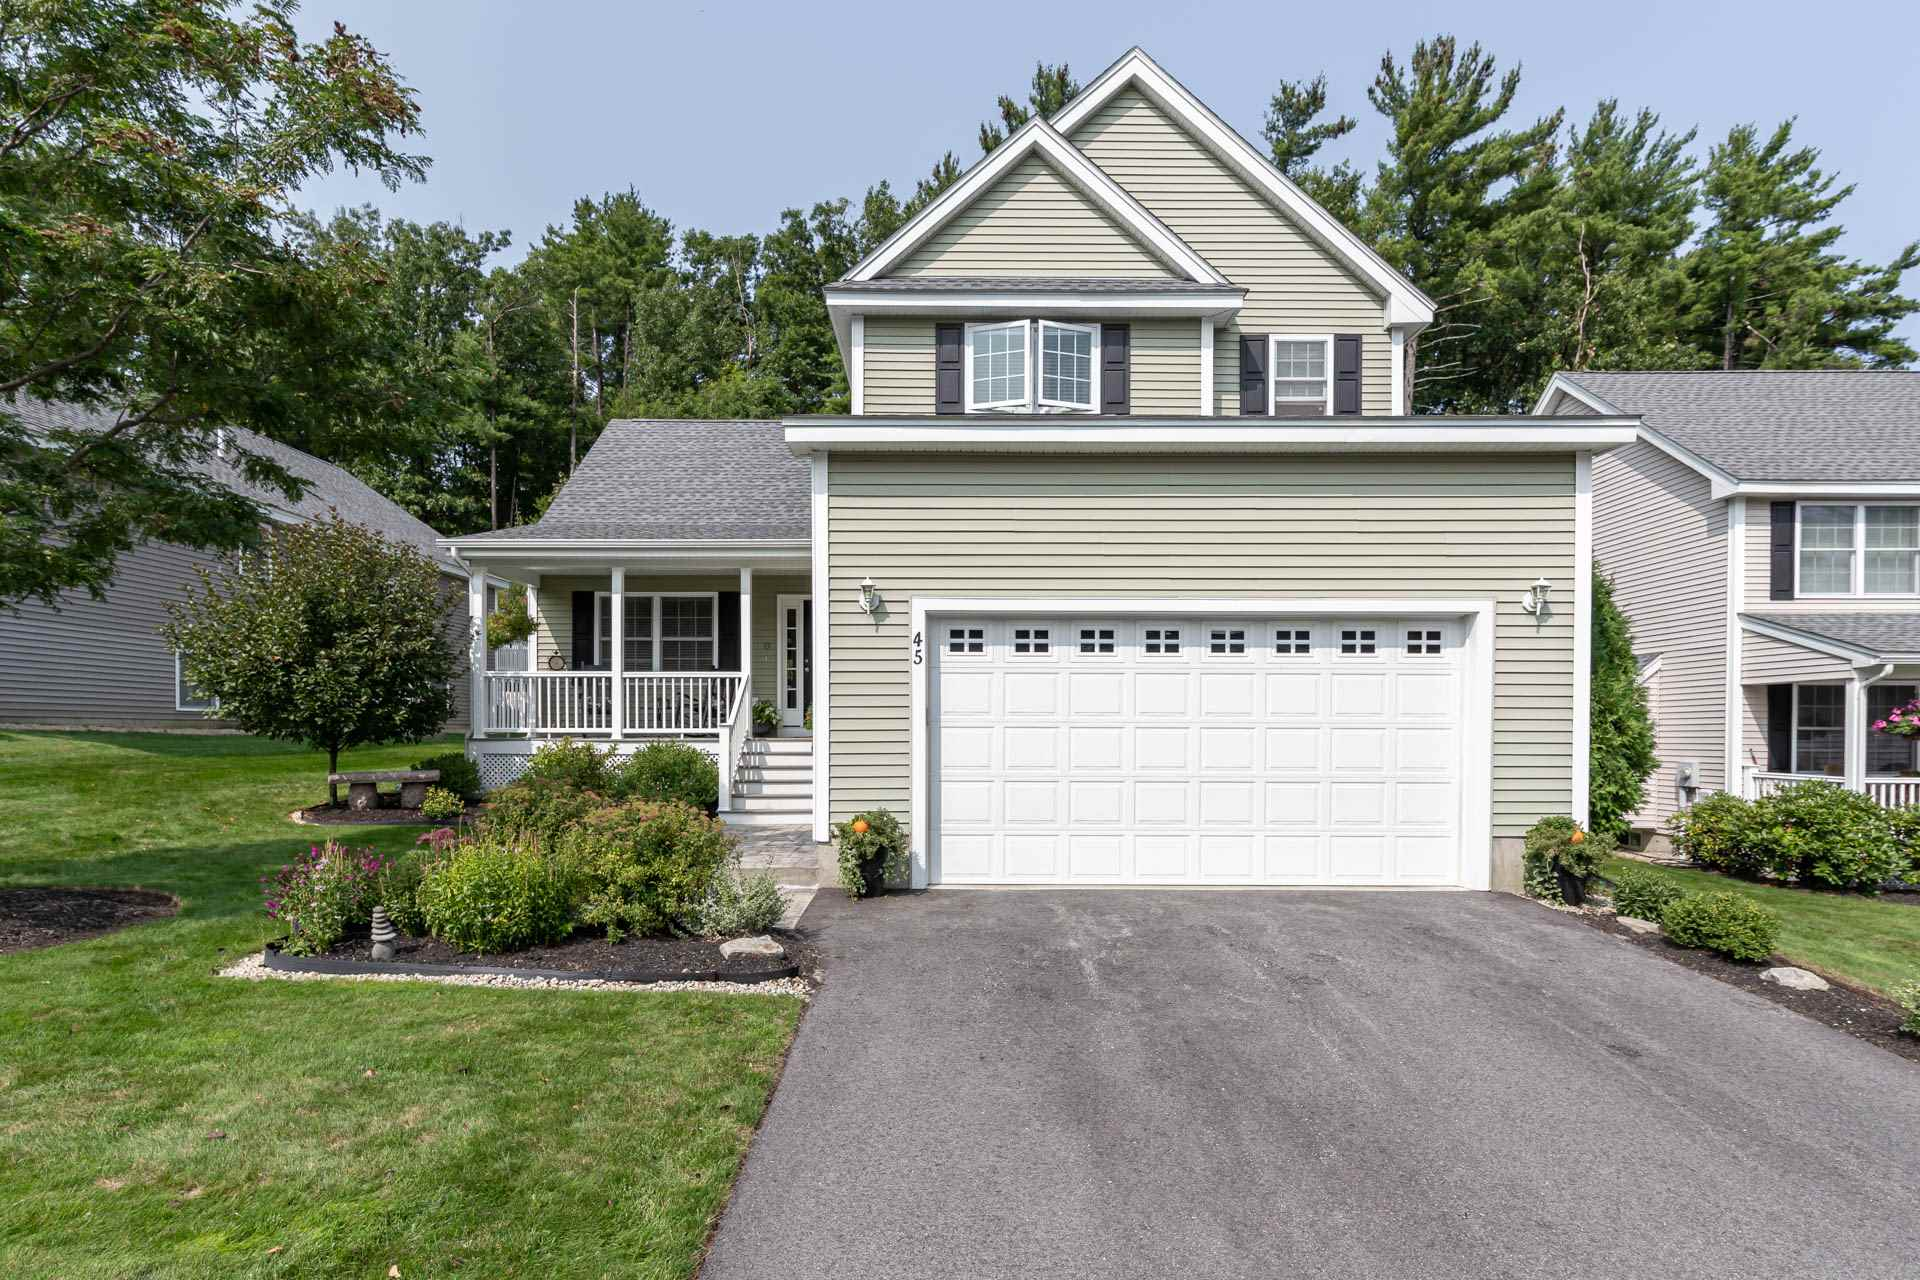 MLS 4829284: 45 Hollow Ridge Drive, Nashua NH